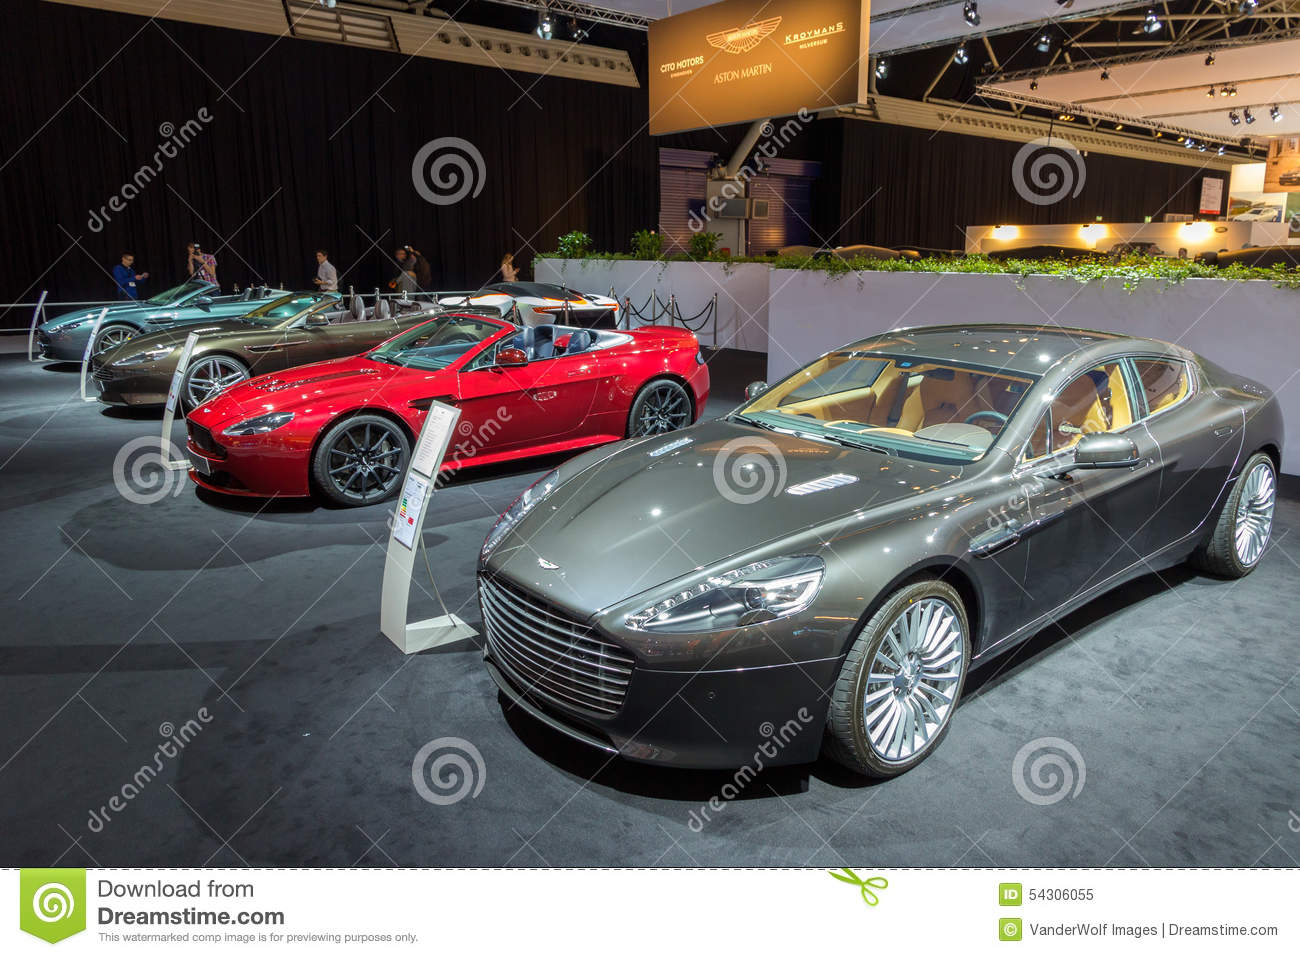 Martin Manufacturer Of Luxury Sports Cars Founded In